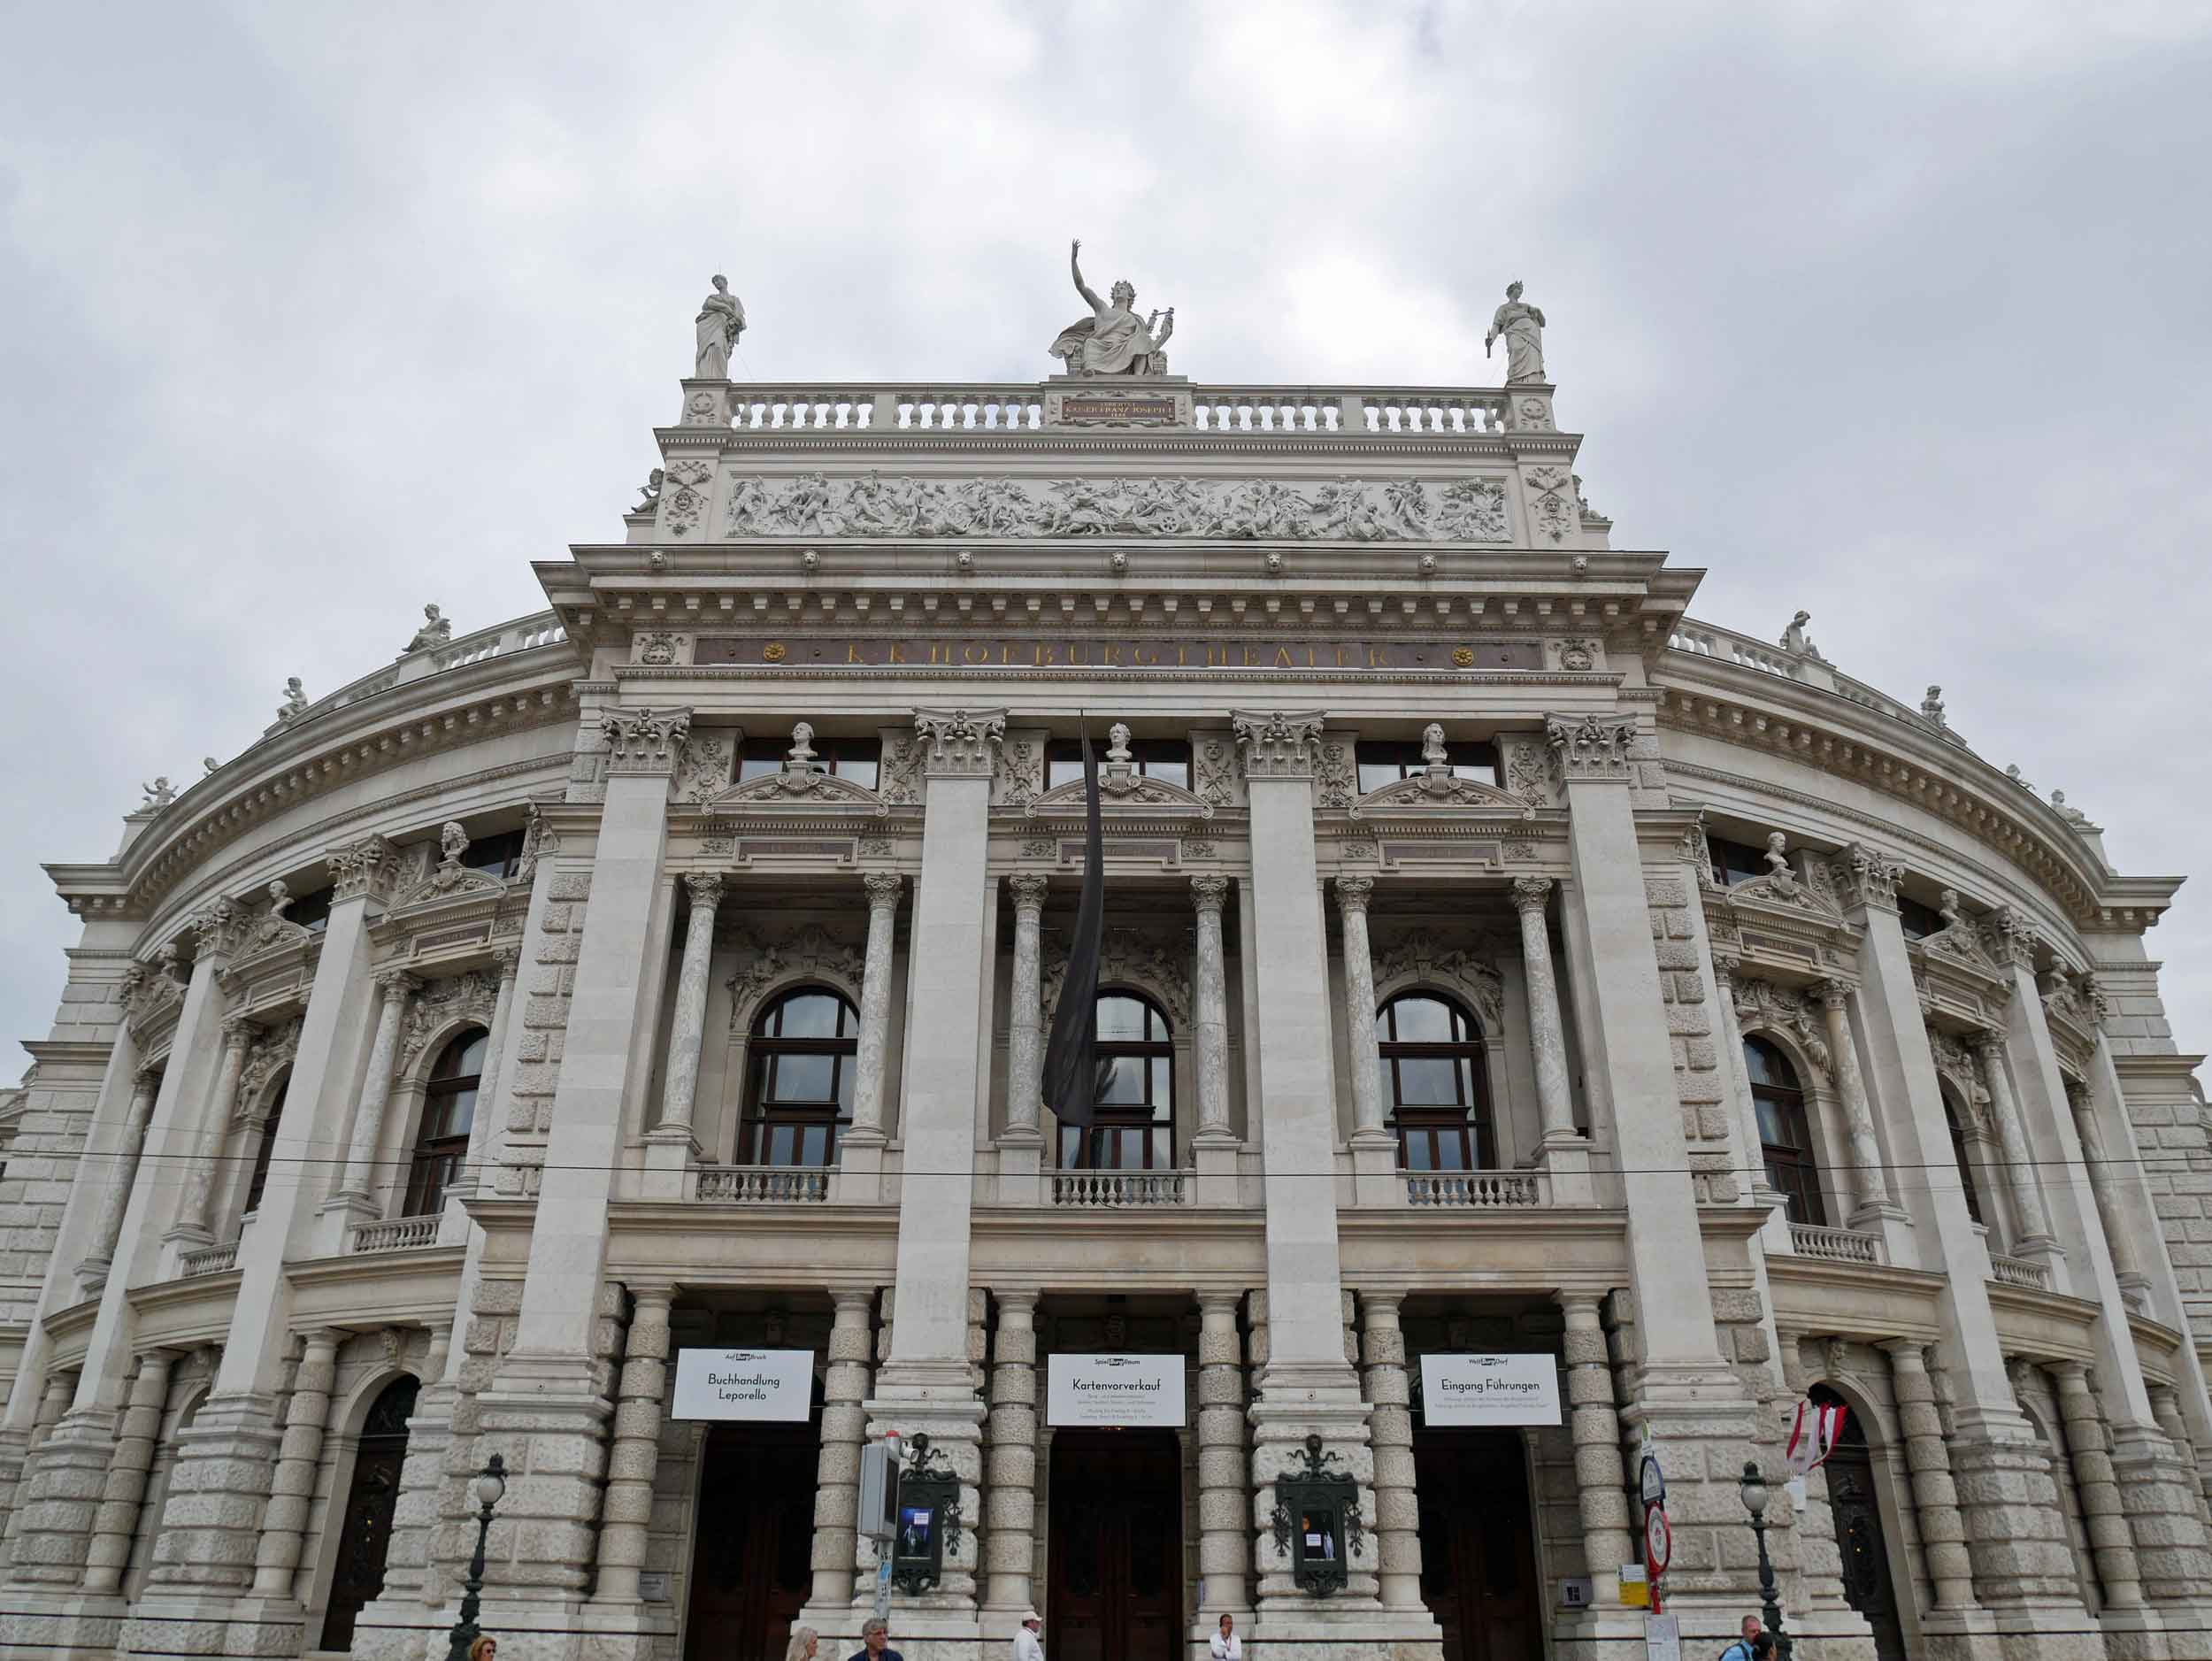 Vienna's stunning Burgtheatre is one of the most important German language theatre's in the world and features magnificent staircases painted by the artist Gustav Klimt.